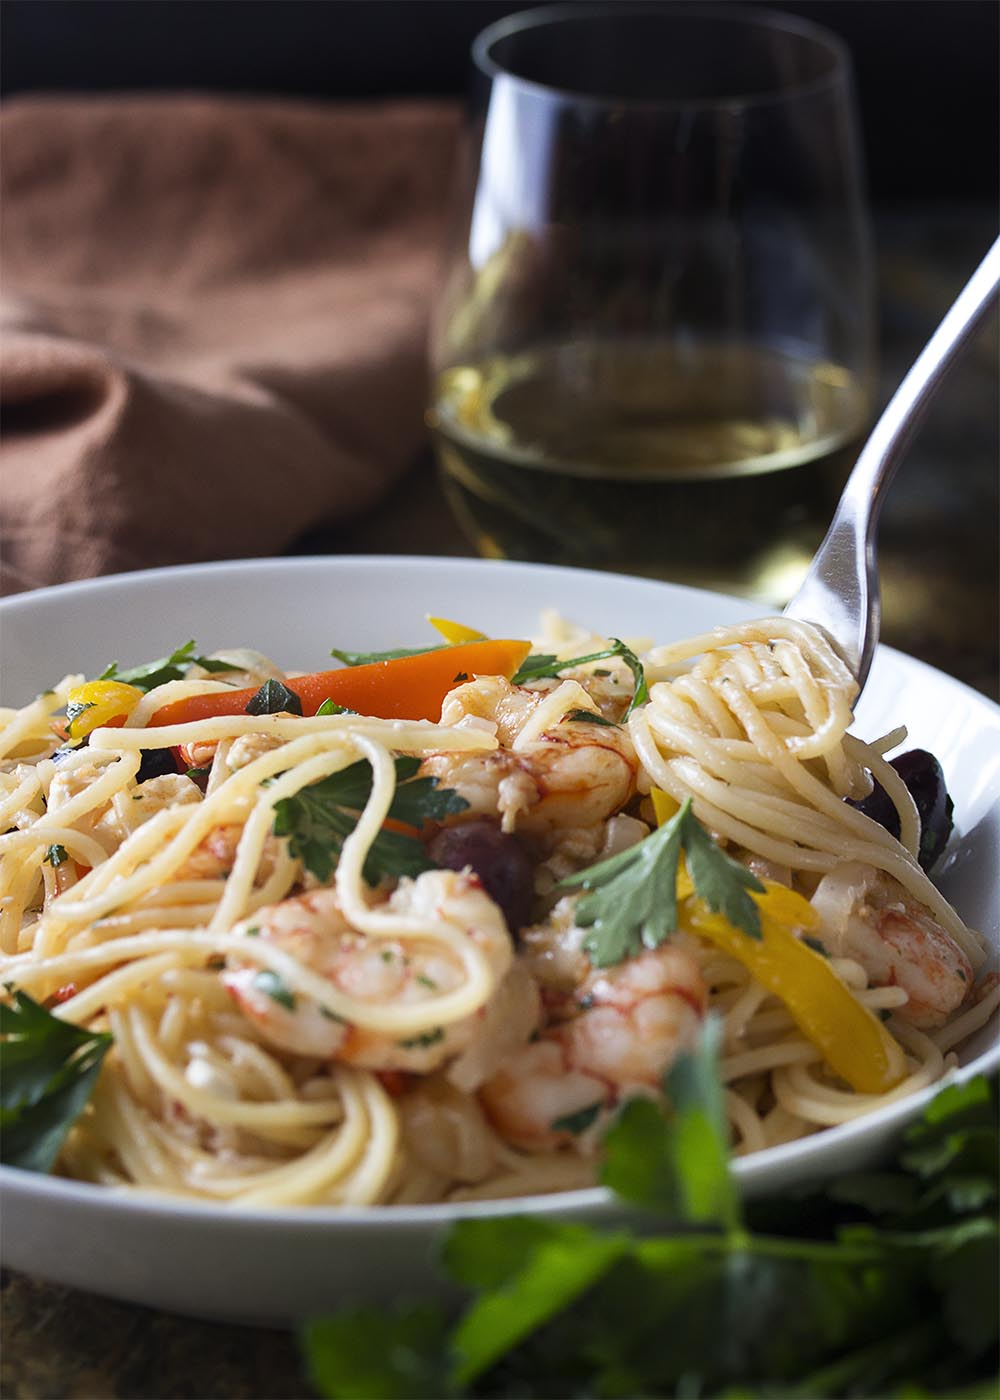 A fork twirling pasta in a white bowl full of Greek shrimp with pasta.